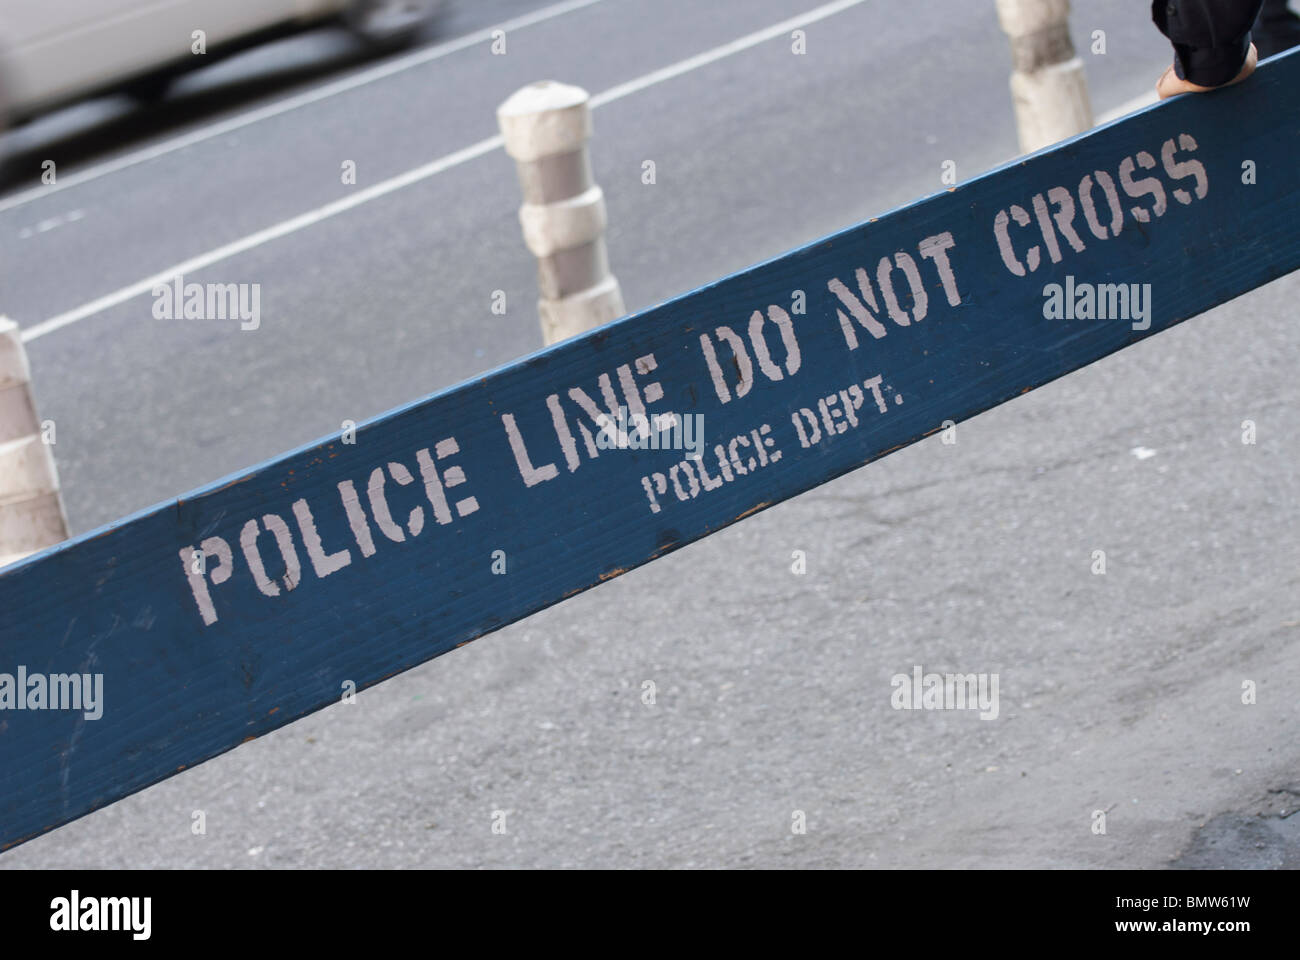 A Police Line Do Not Cross Sign in Times Square New York City, USA - Stock Image